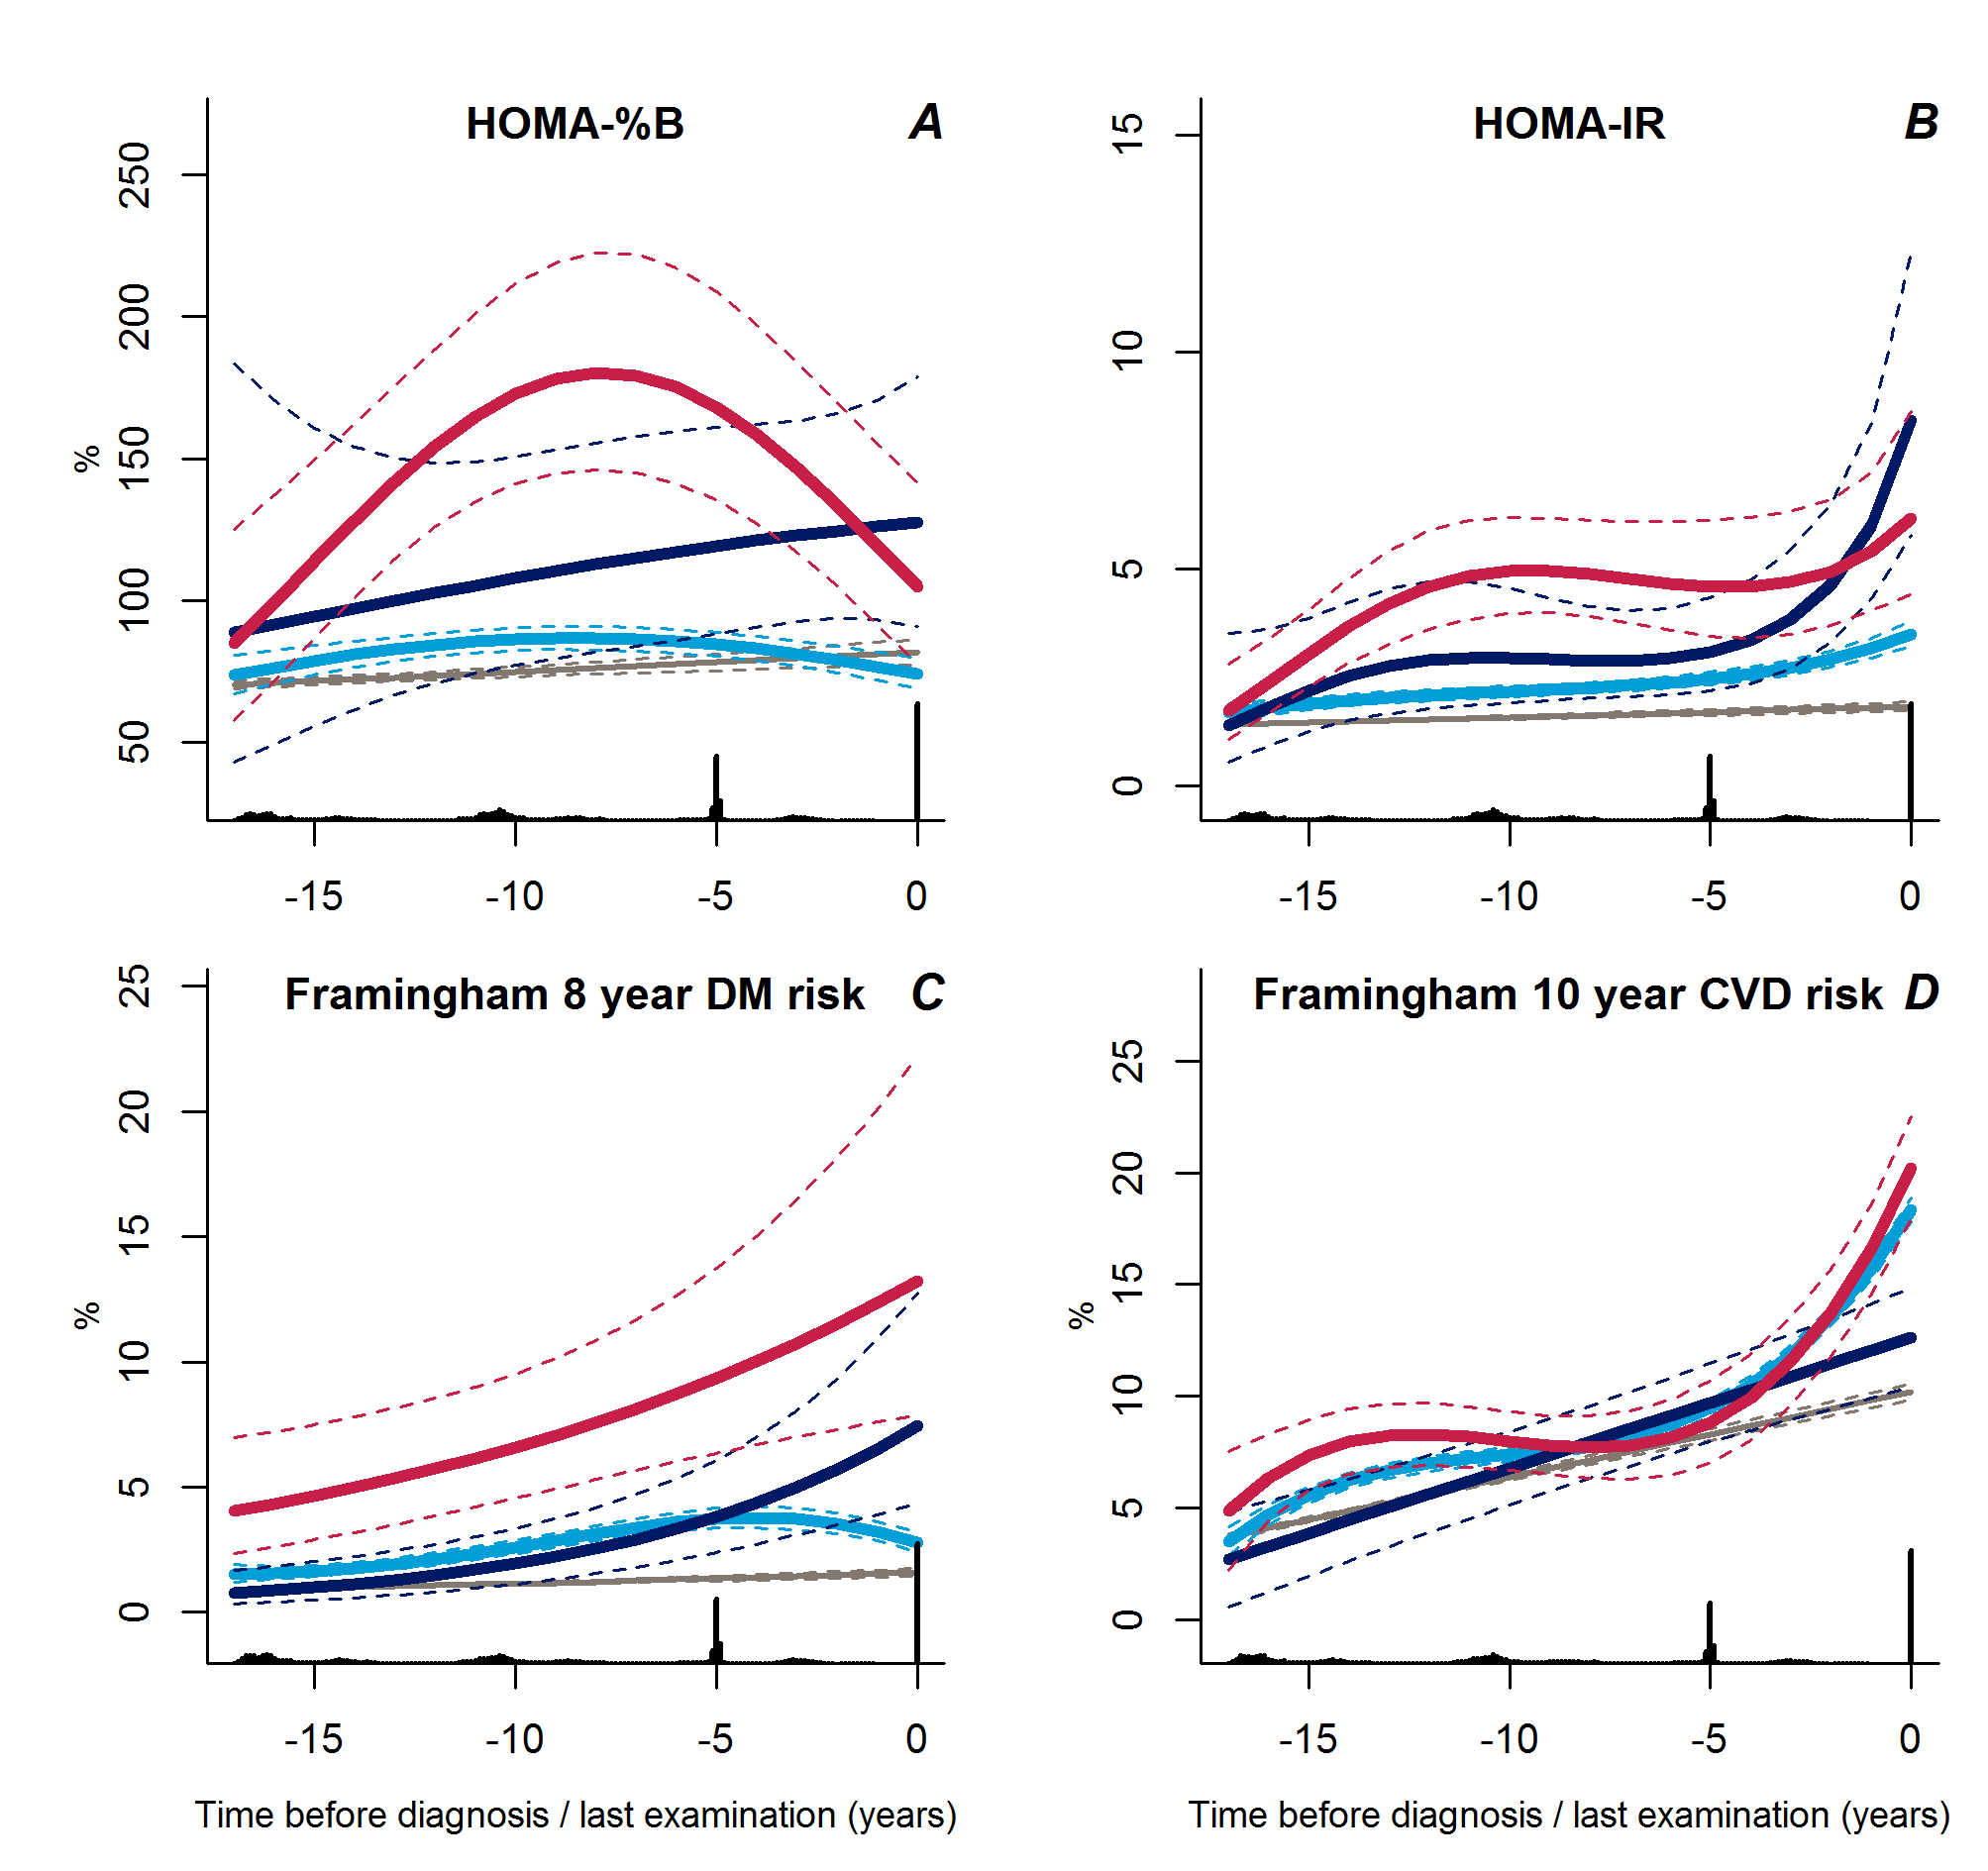 Trajectories for a hypothetical male of 60 years at time 0 of HOMA-%B (A), HOMA-IR (B), Framingham 8-year diabetes risk (C), and Framingham 10-year CVD risk (D) from 18 years before time of diagnosis/last examination.